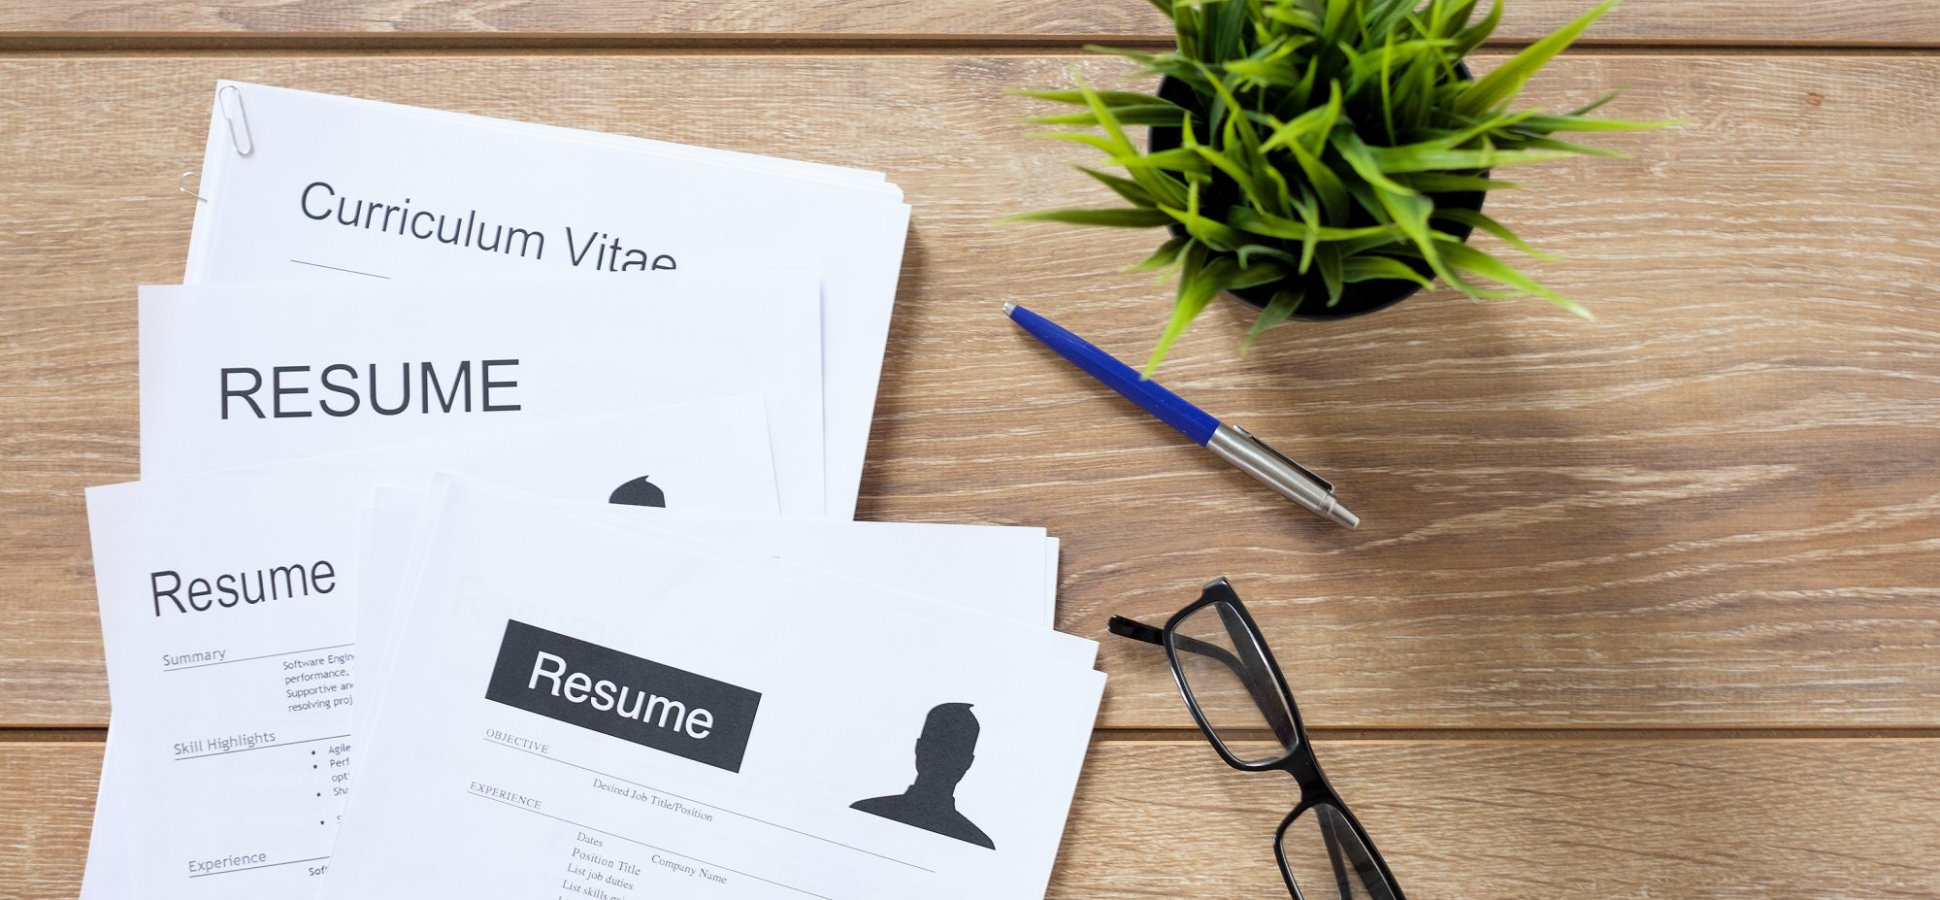 What Does a 'Good' Resume Look Like in 2019? The Answer May Surprise You